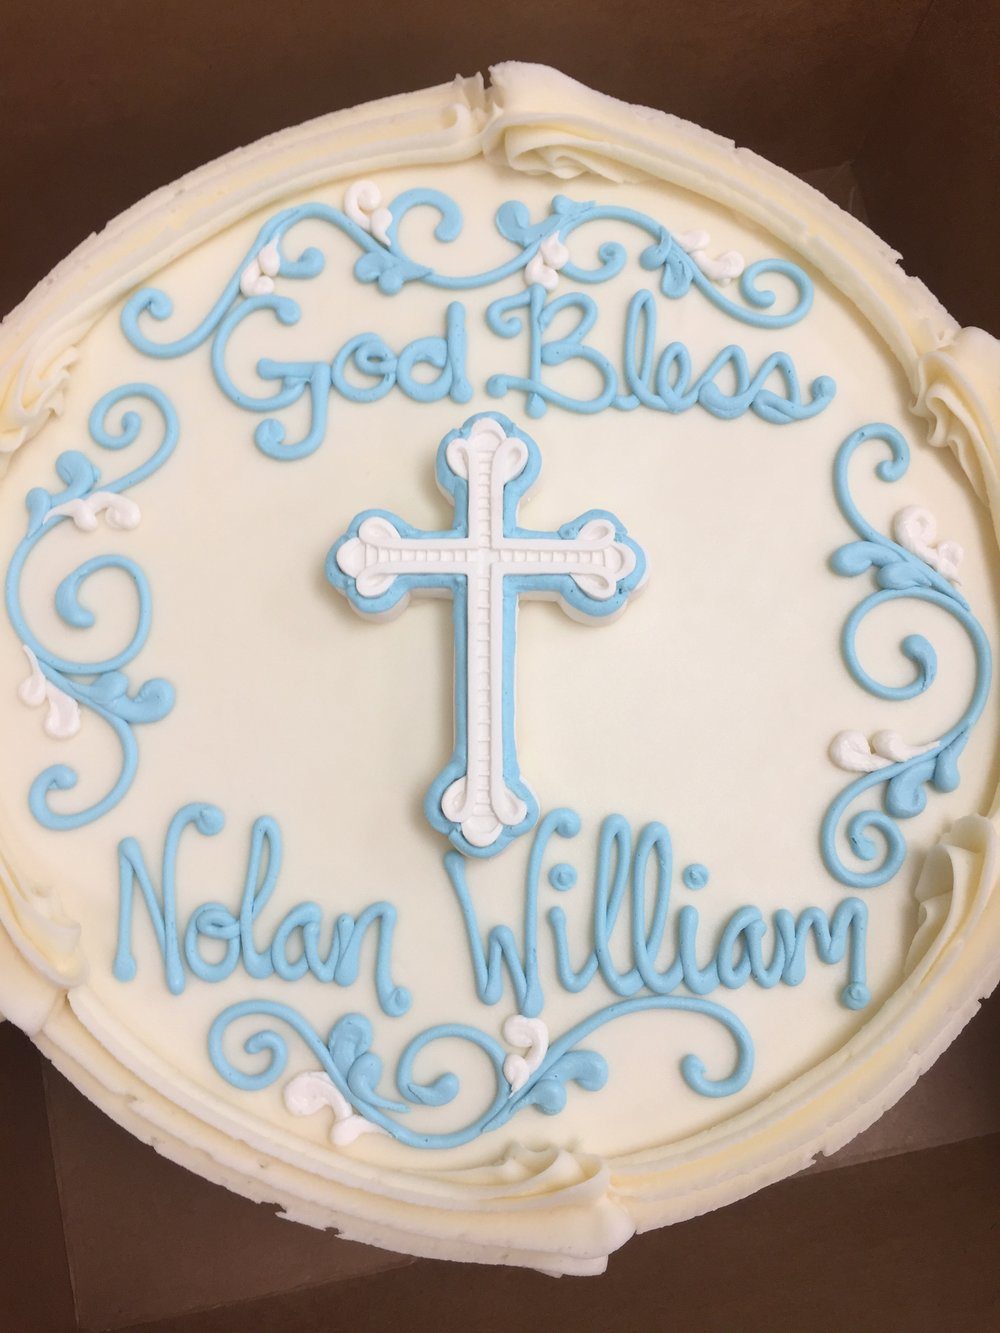 White and Blue Fondant Cross for a First Holy Communion